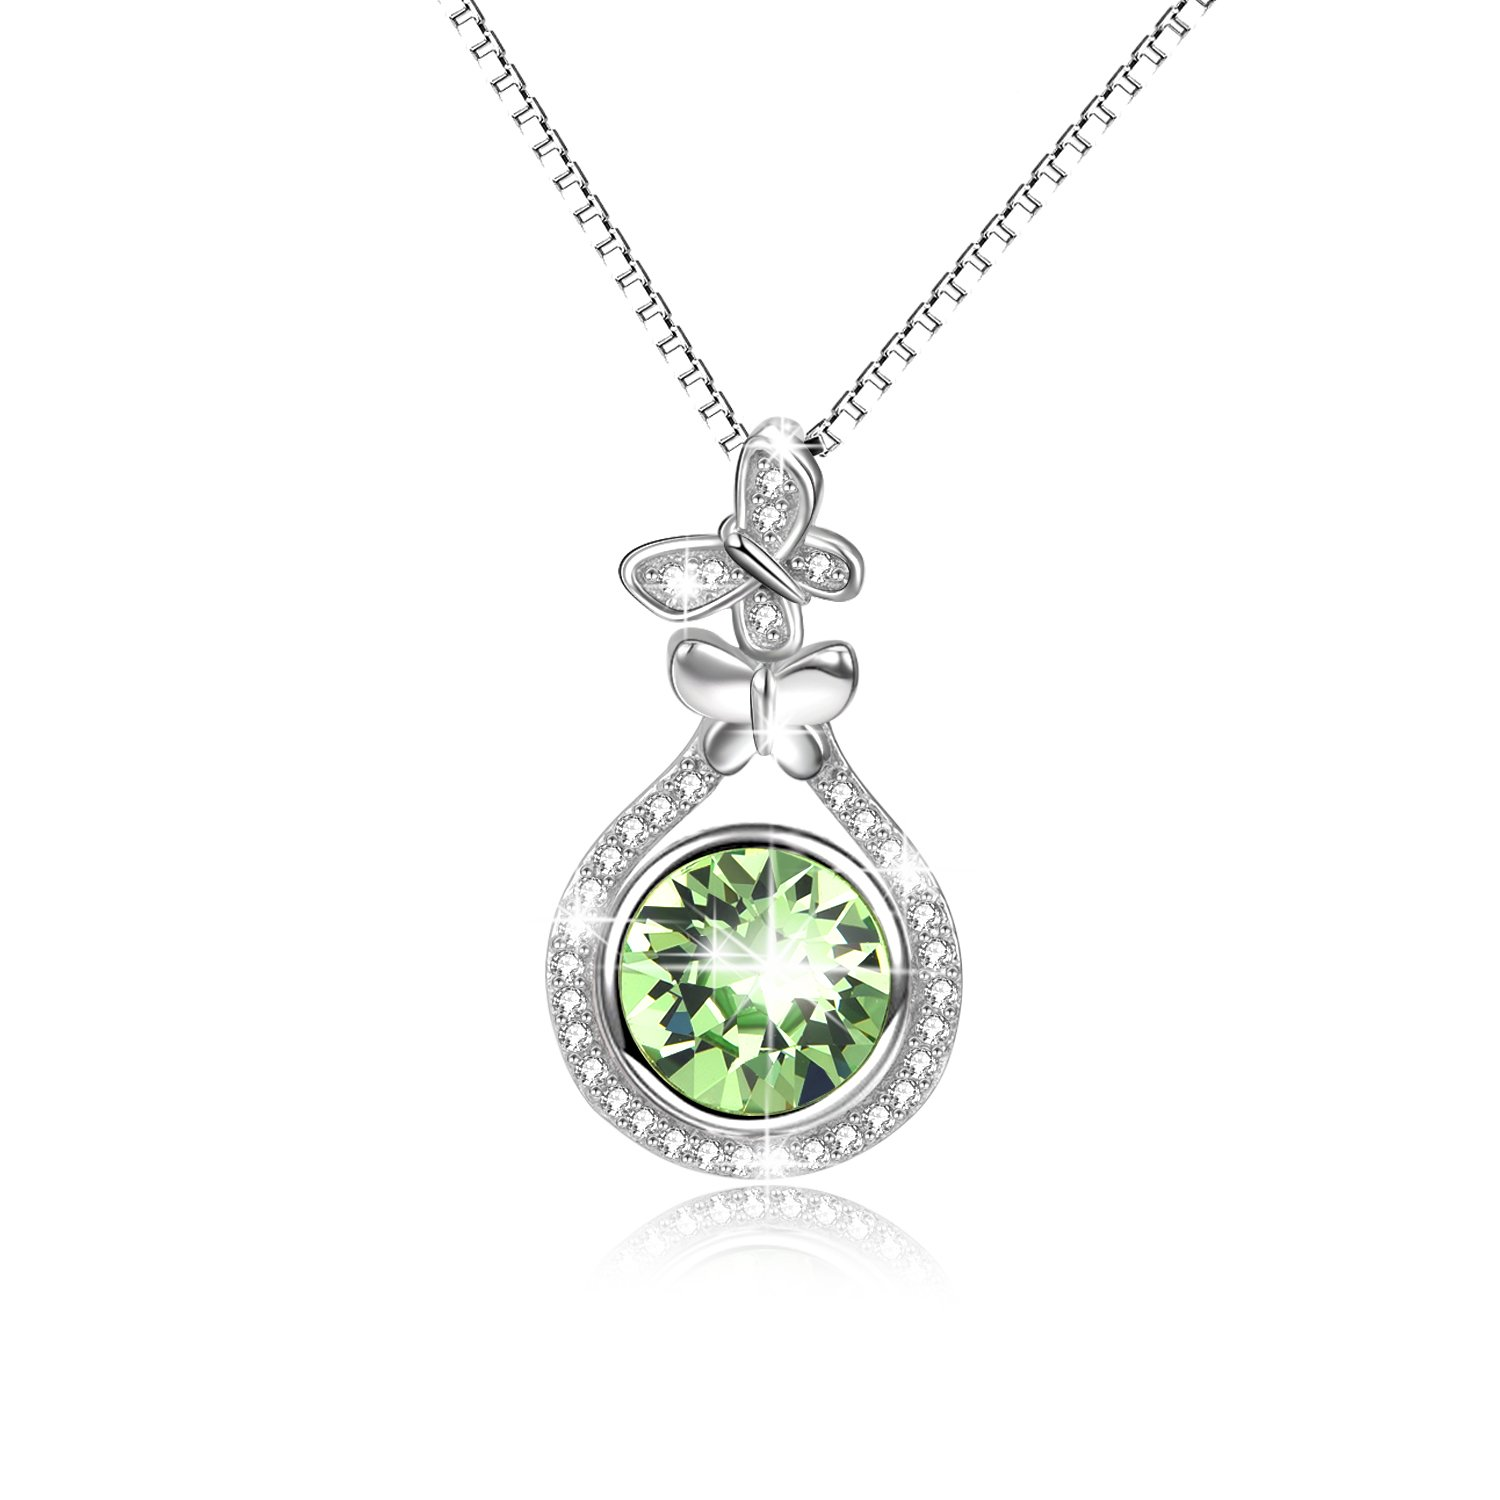 AOBOCO Sterling Silver Teardrop Necklace Butterfly Pendant Necklace with Round Green Swarovski Crystals,Gift for Women Girls